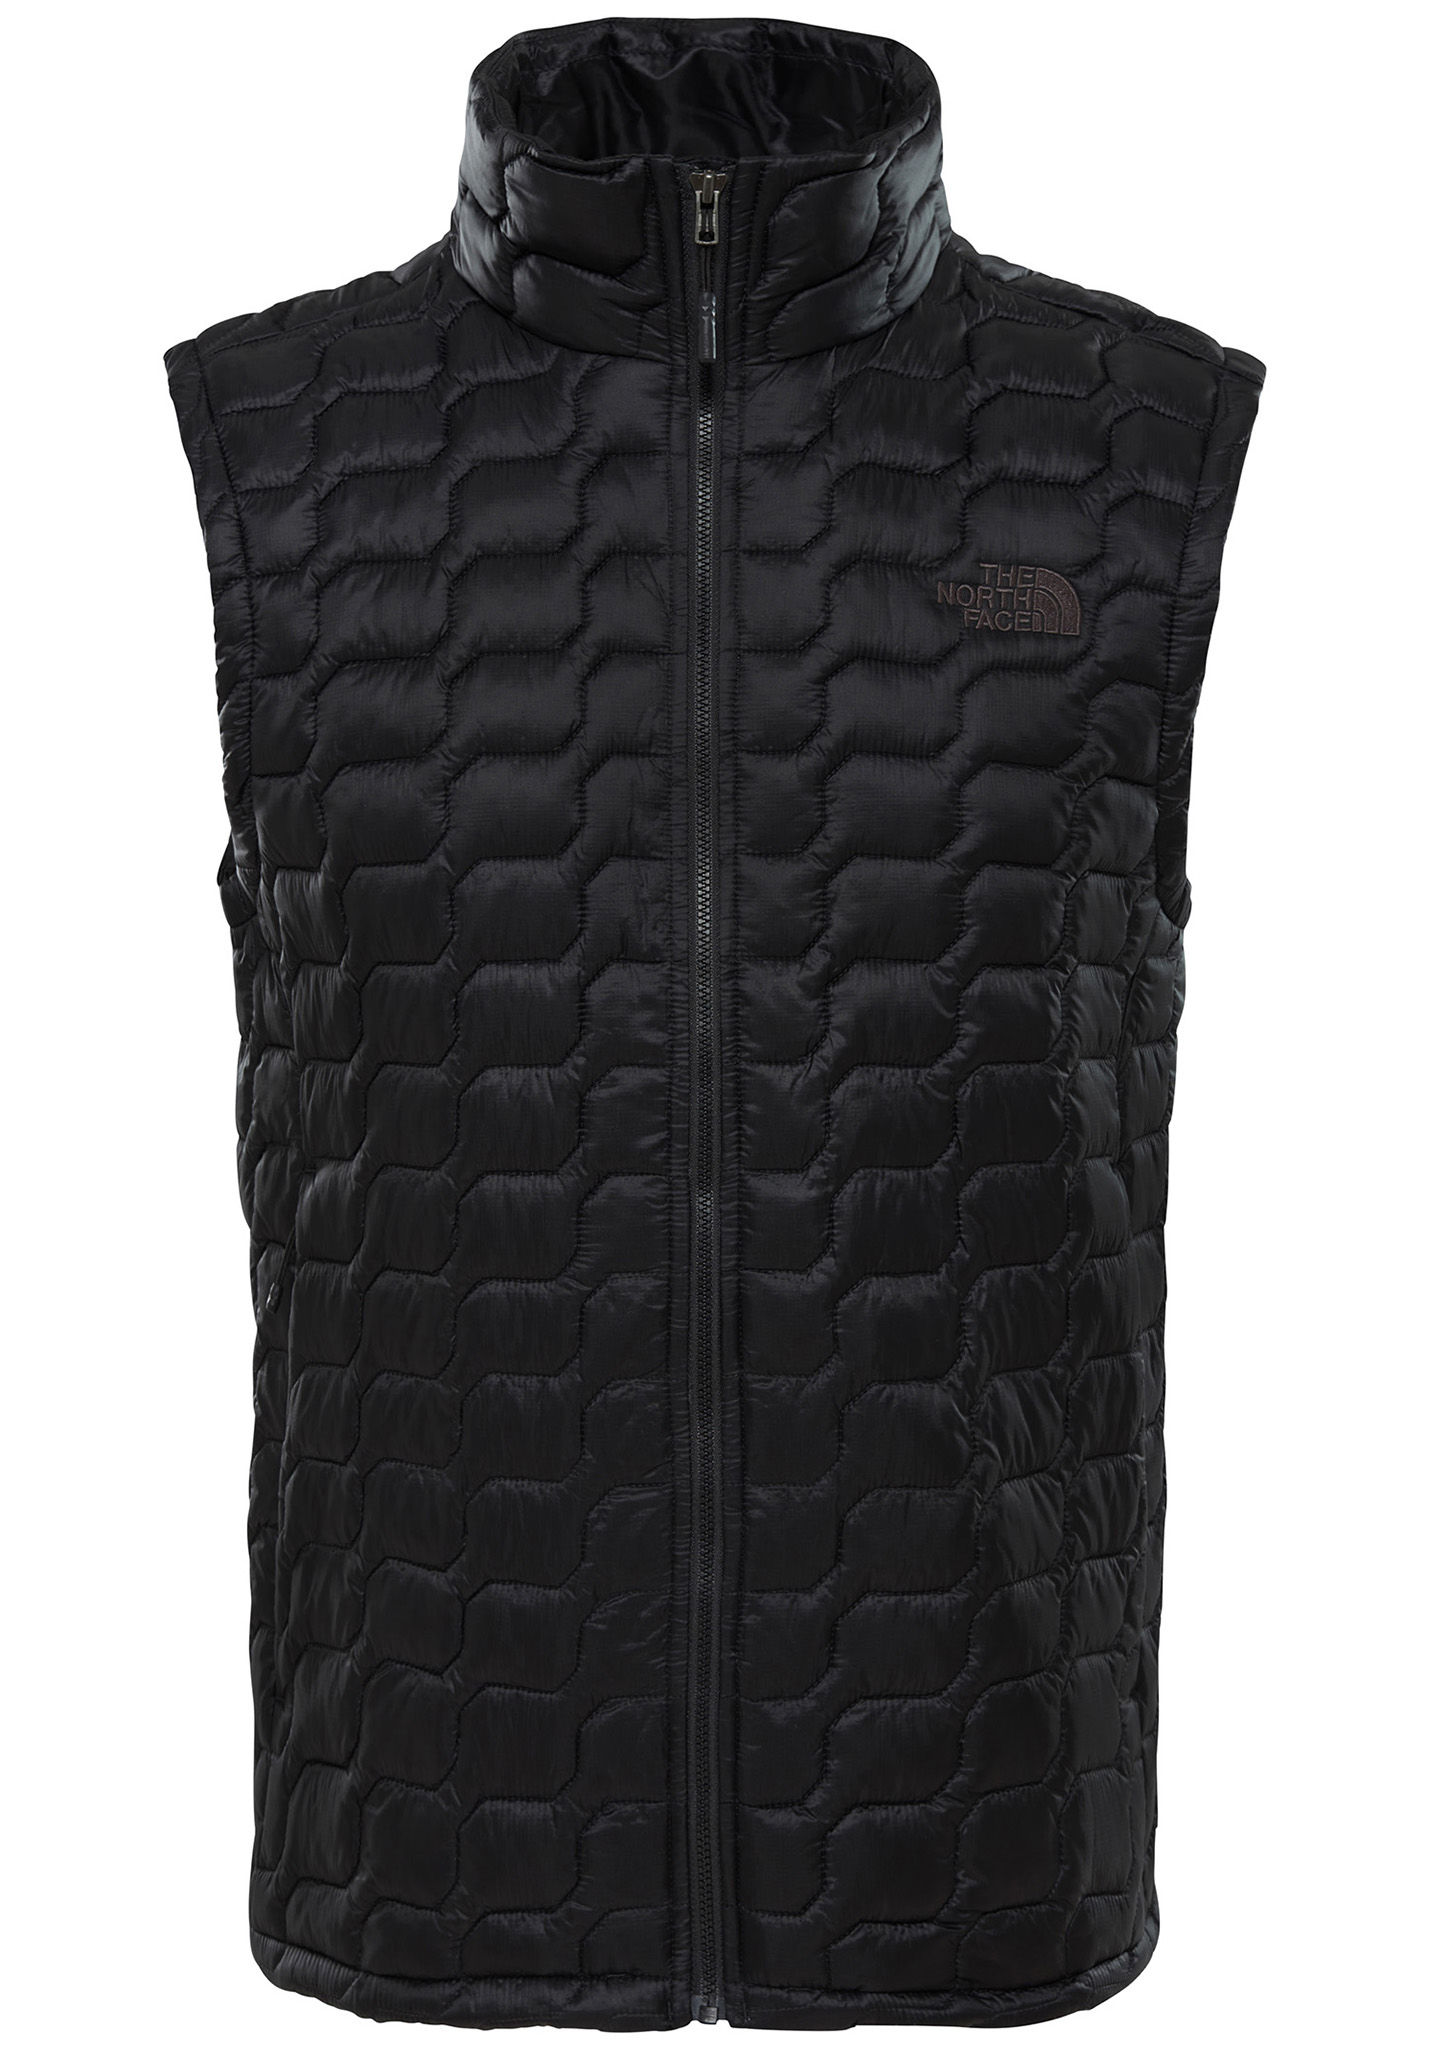 70a9cdf5dcd the-north-face-thermoball-gilet-hommes-noirs.jpg